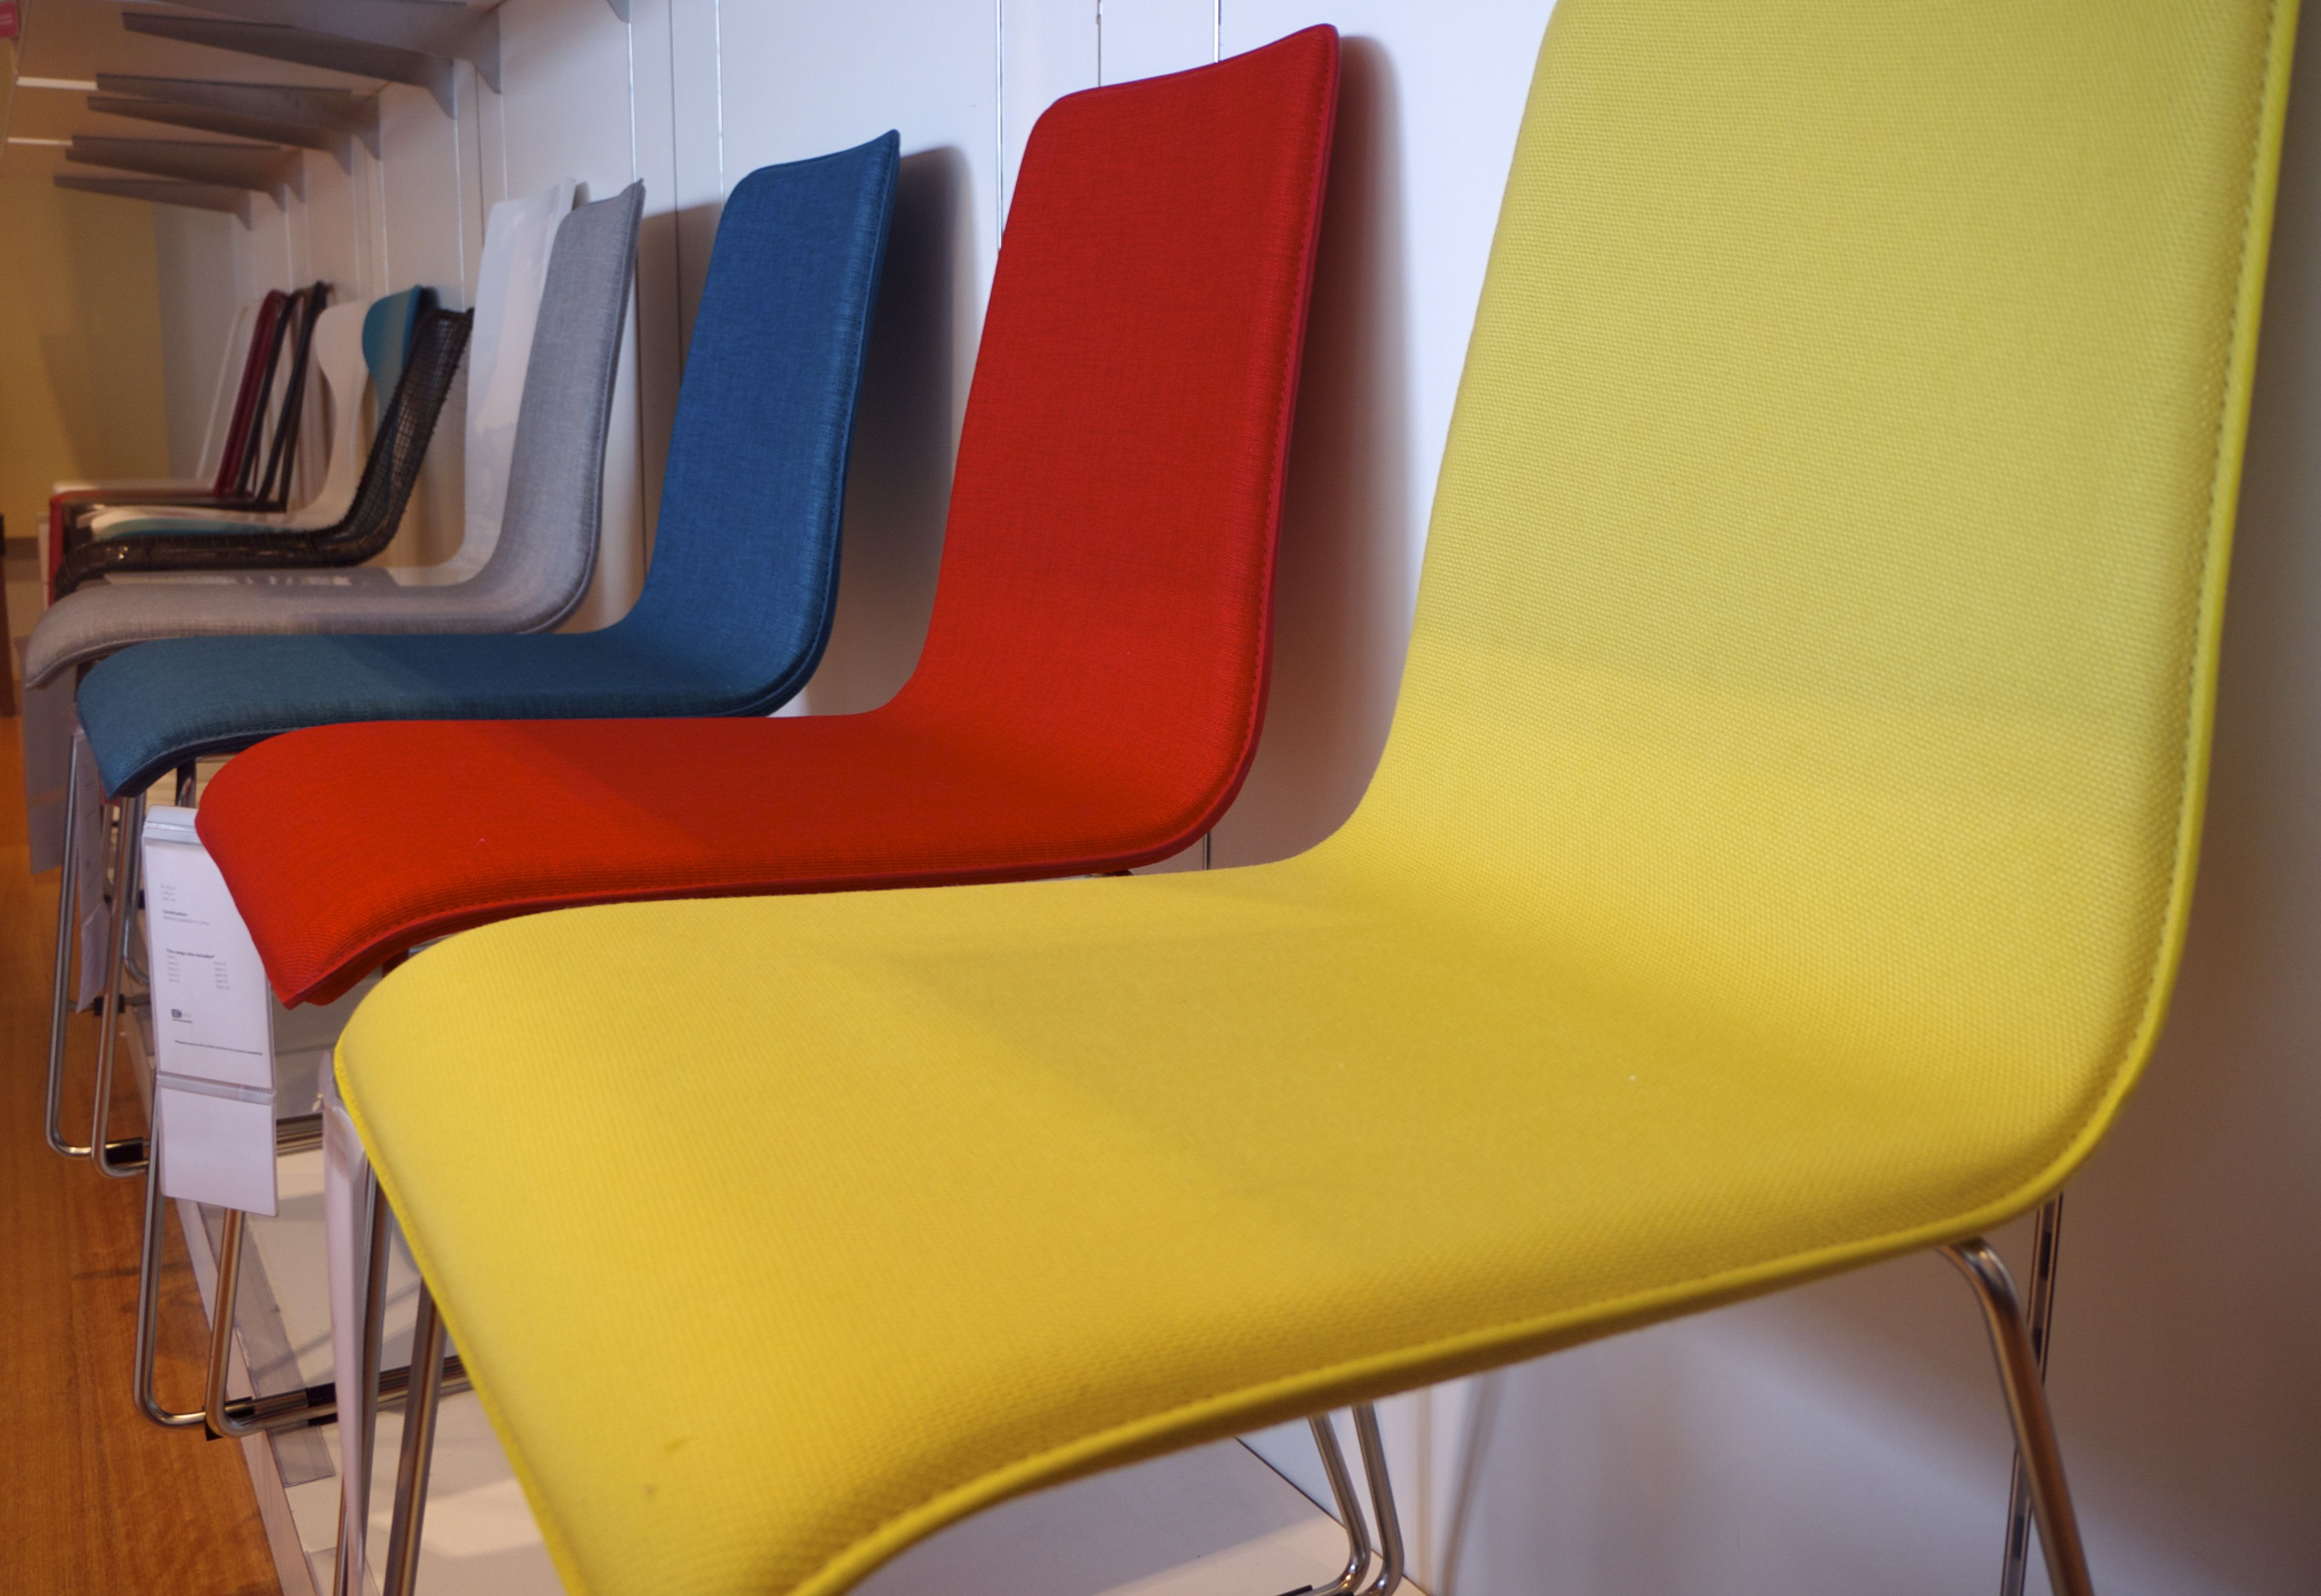 Store Tour: Form, Function and Fun at Freedom Top Ryde ...